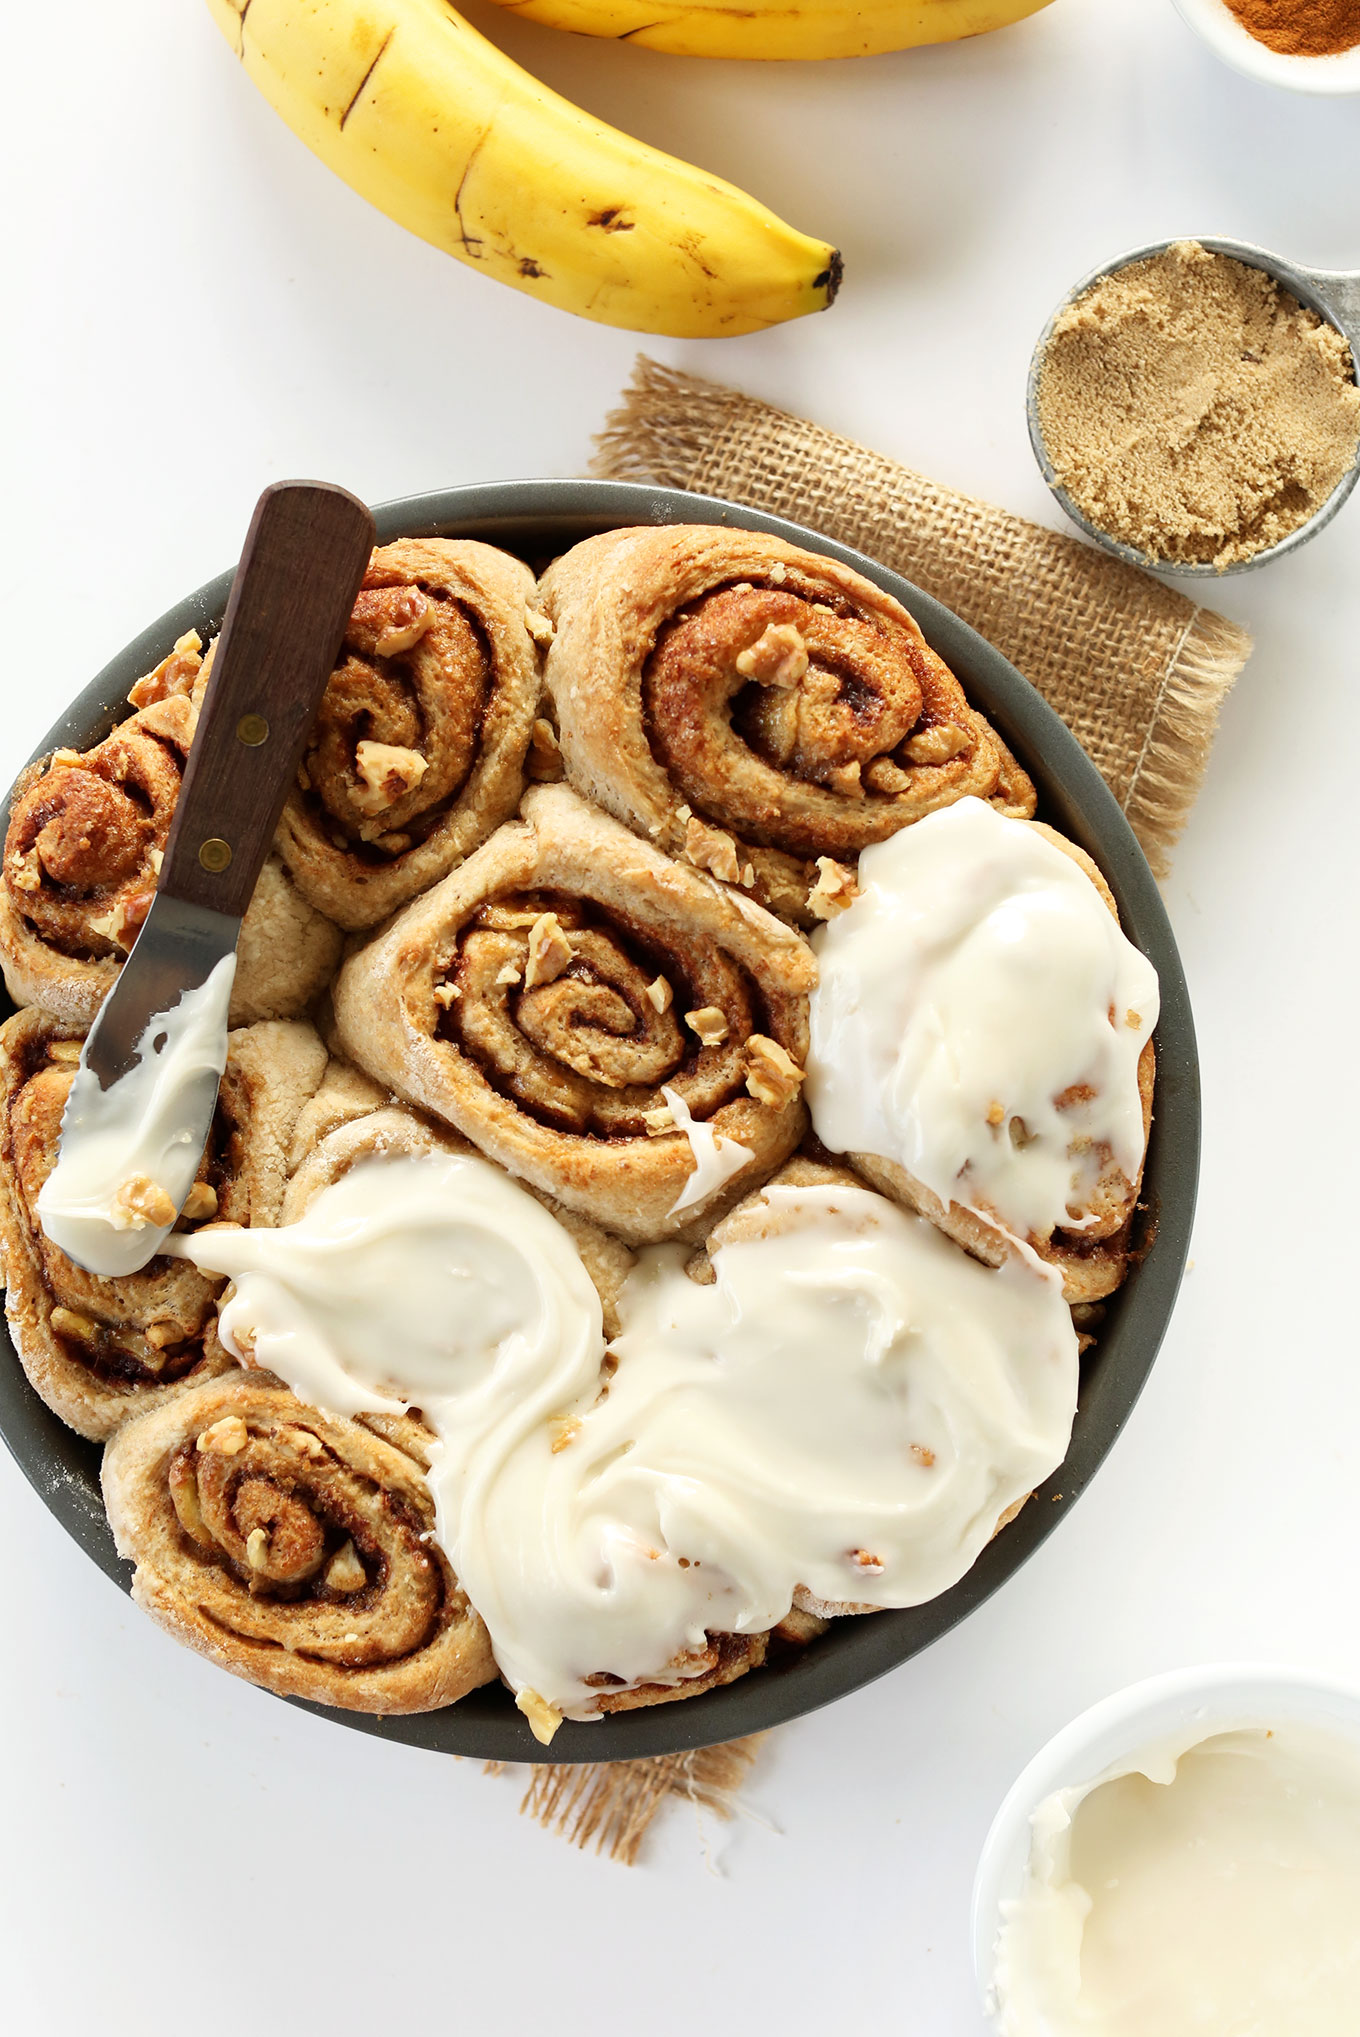 Spreading icing over freshly baked Vegan Banana Bread Cinnamon Rolls